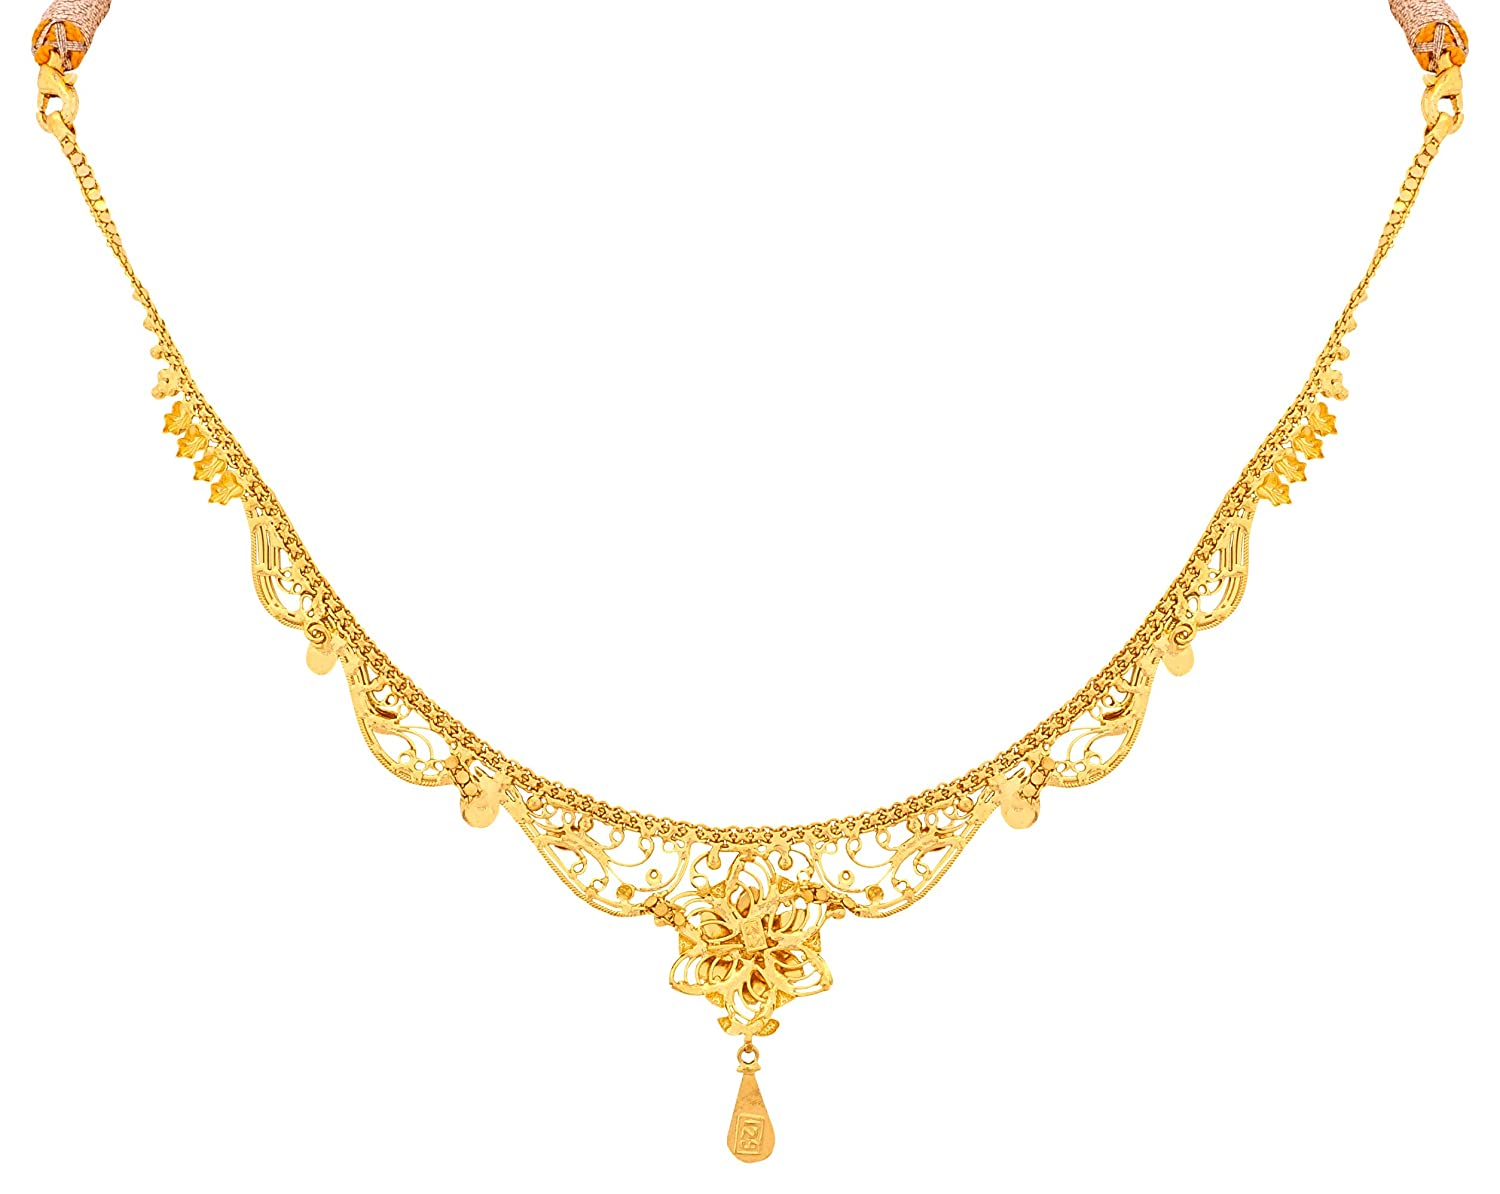 Buy Senco Gold 22k Yellow Gold Chain Necklace Online at Low Prices ...